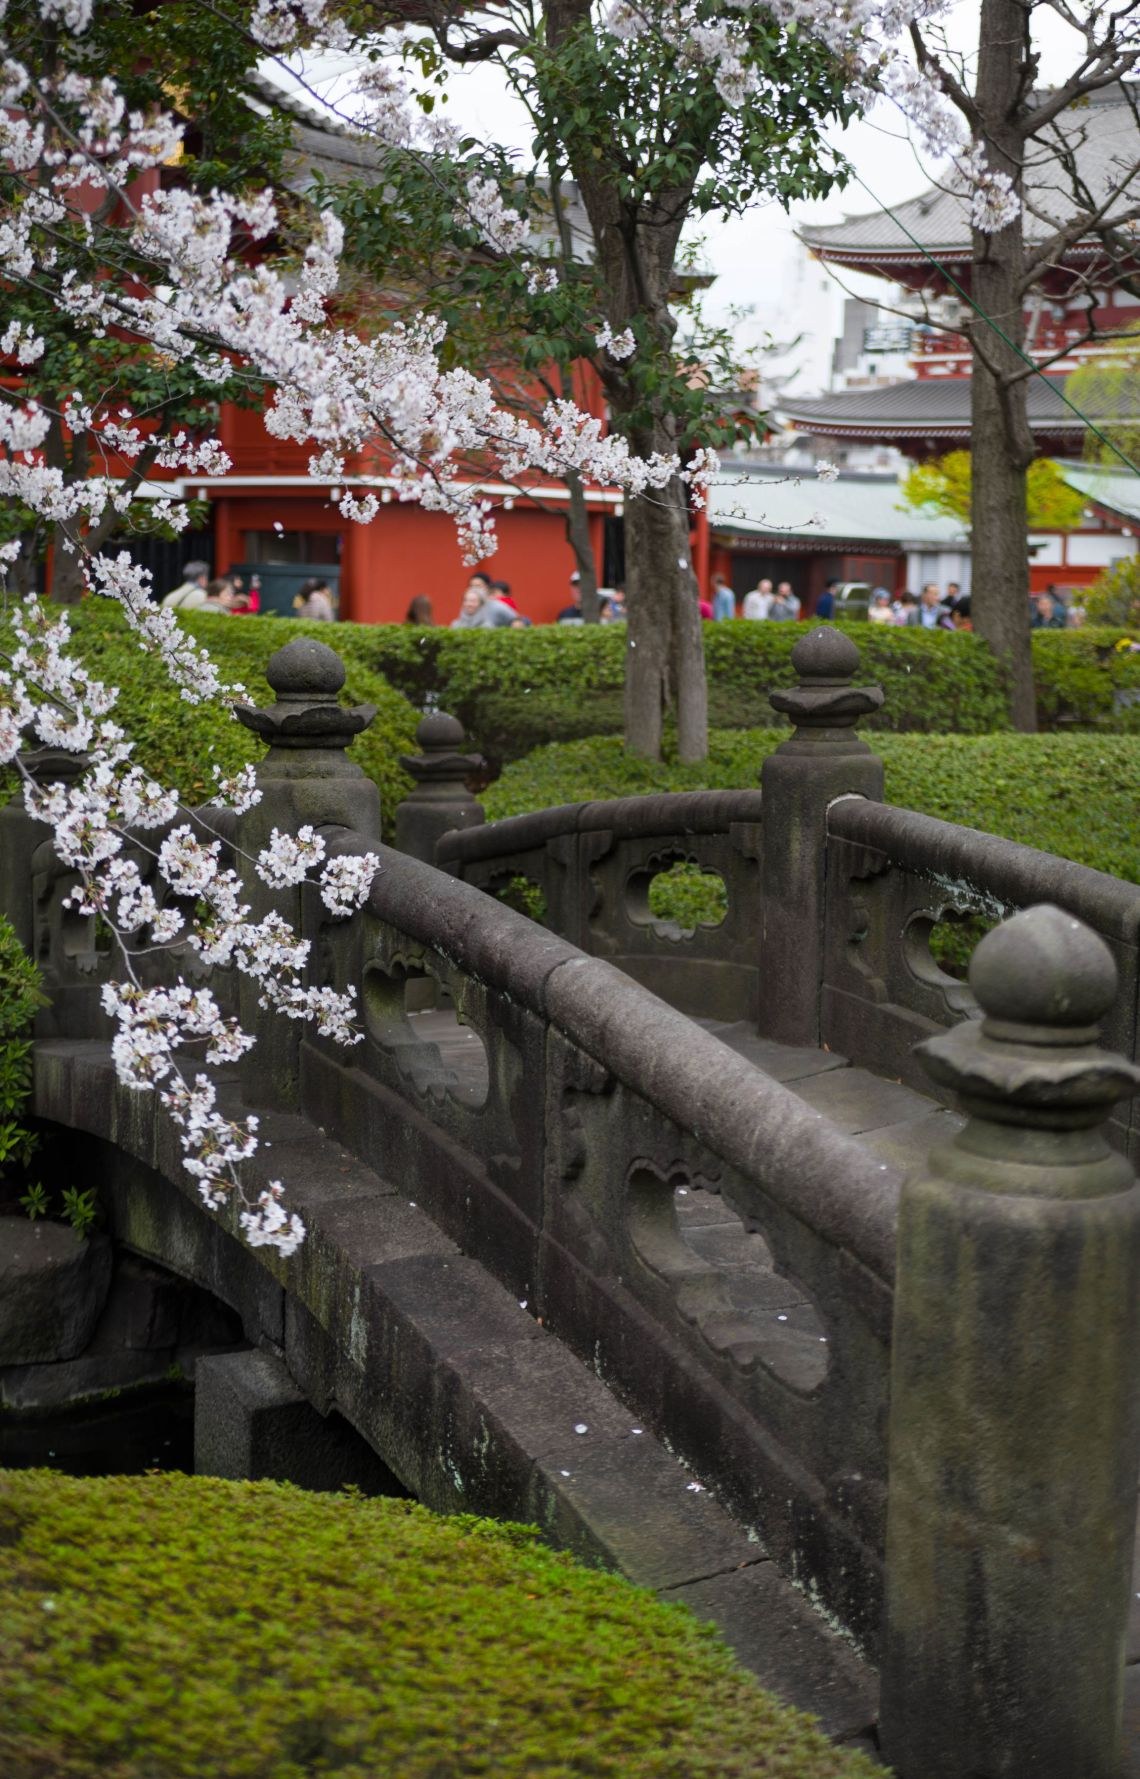 Stone Bridge Senso-Ji Temple Asakusa Kannon Buddhist Temple in Tokyo, Japan Shrine with Massive Red Japanese Paper Lanterns Near Tokyo Sky Tree Goddess of Mercy by Annie Fairfax Where to Visit Tokyo Things to do In Tokyo, Japanese Travel Tourism Trip Inspiration Pictues of tokyo Japan